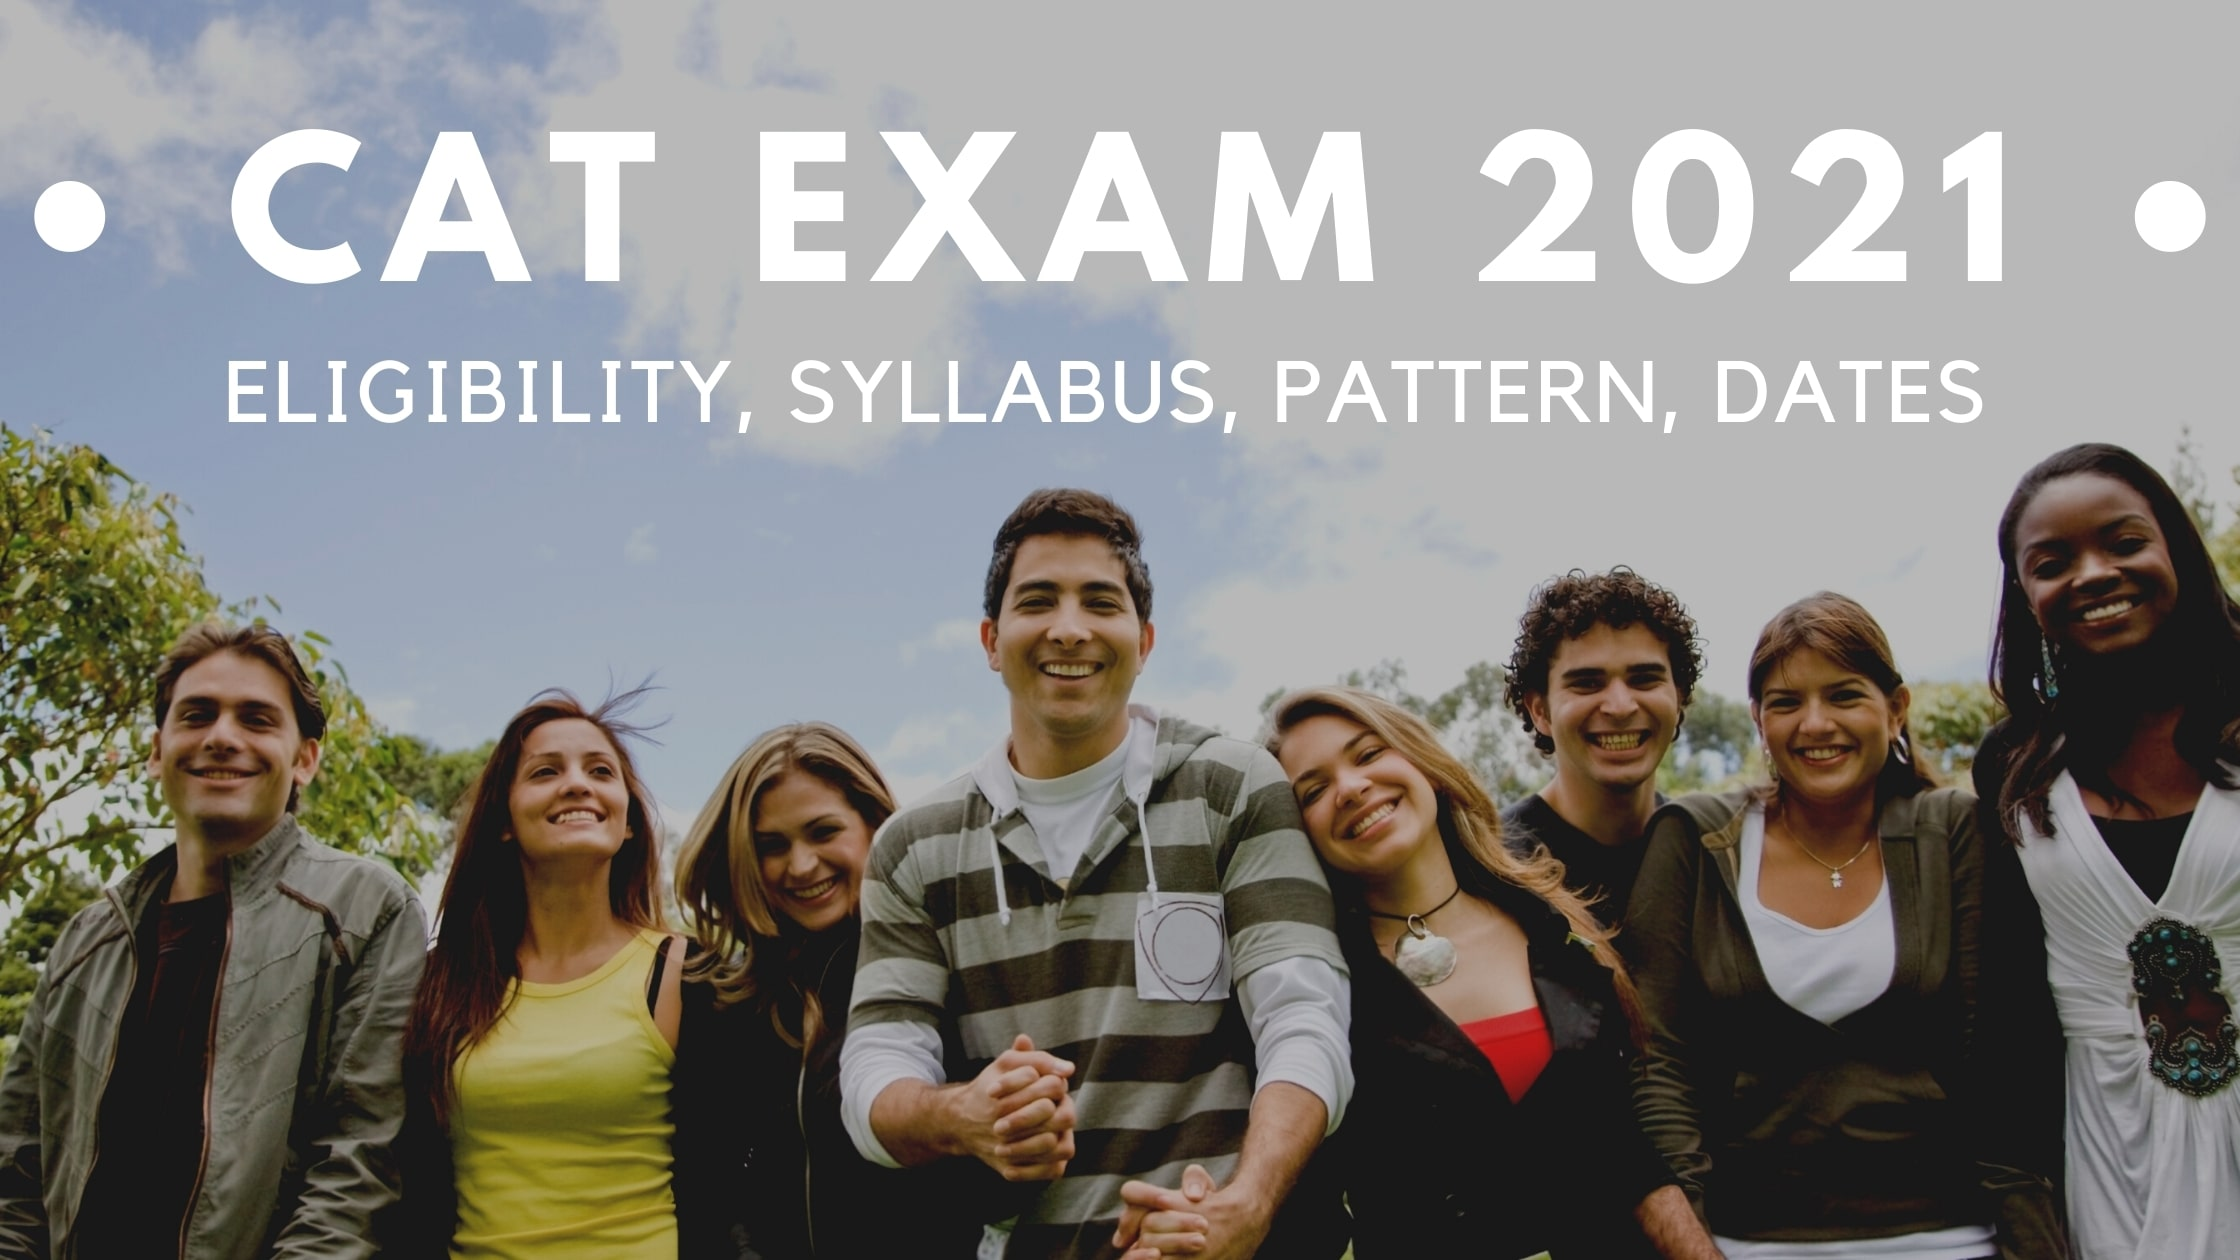 CAT Exam 2021 – Exam Info, Dates, Syllabus, Eligibility